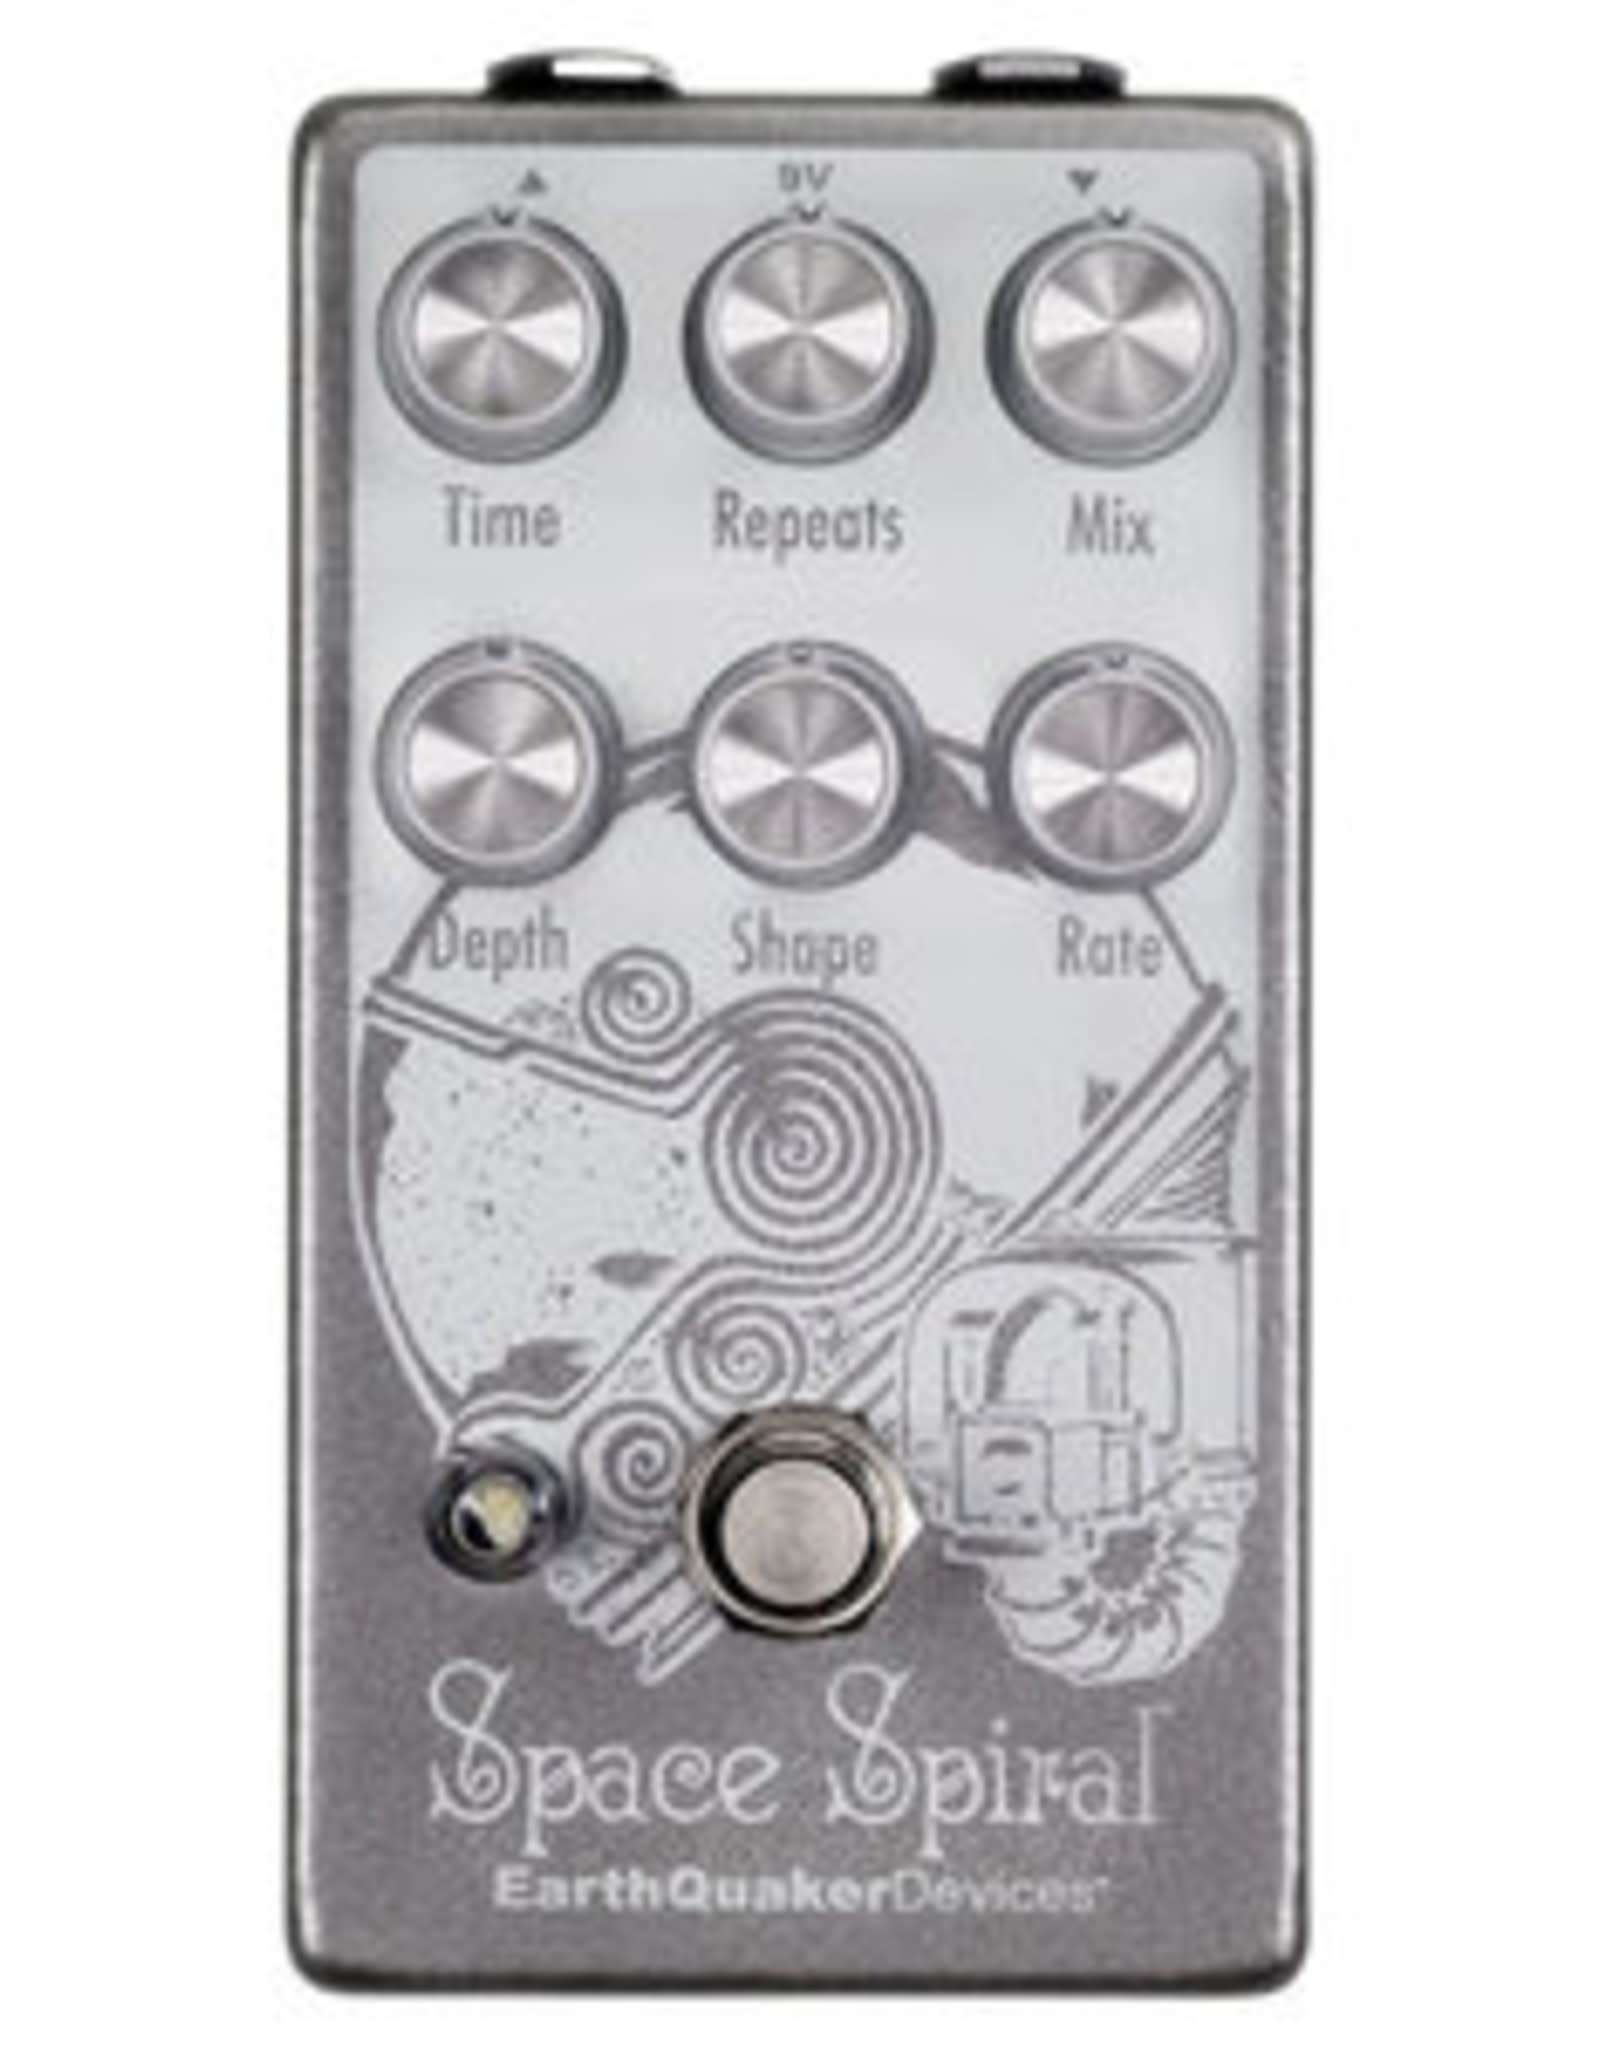 EarthQuaker Devices EarthQuaker Space Spiral  Modulated Delay V2